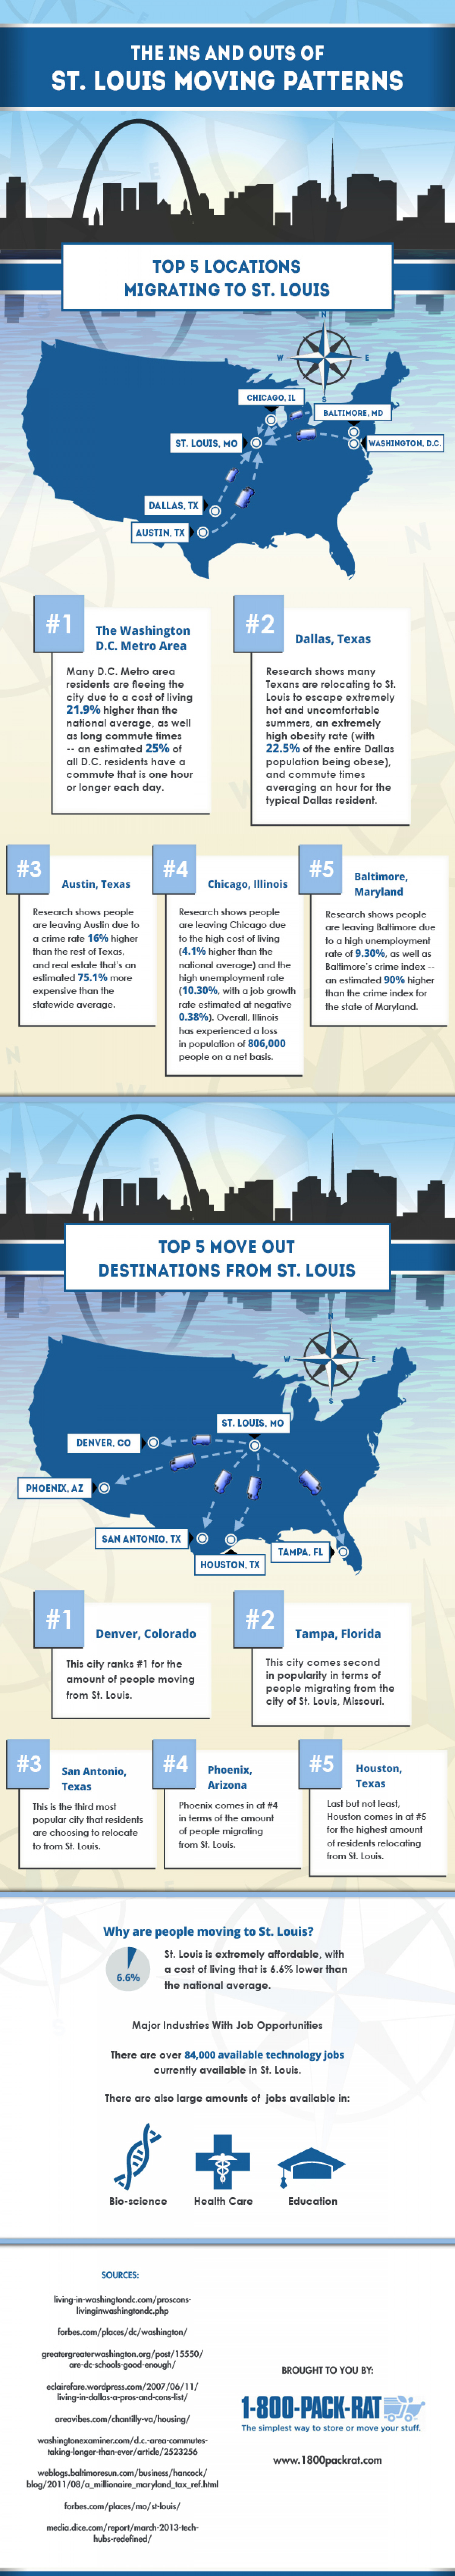 The Ins and Outs of St. Louis Moving Patterns Infographic